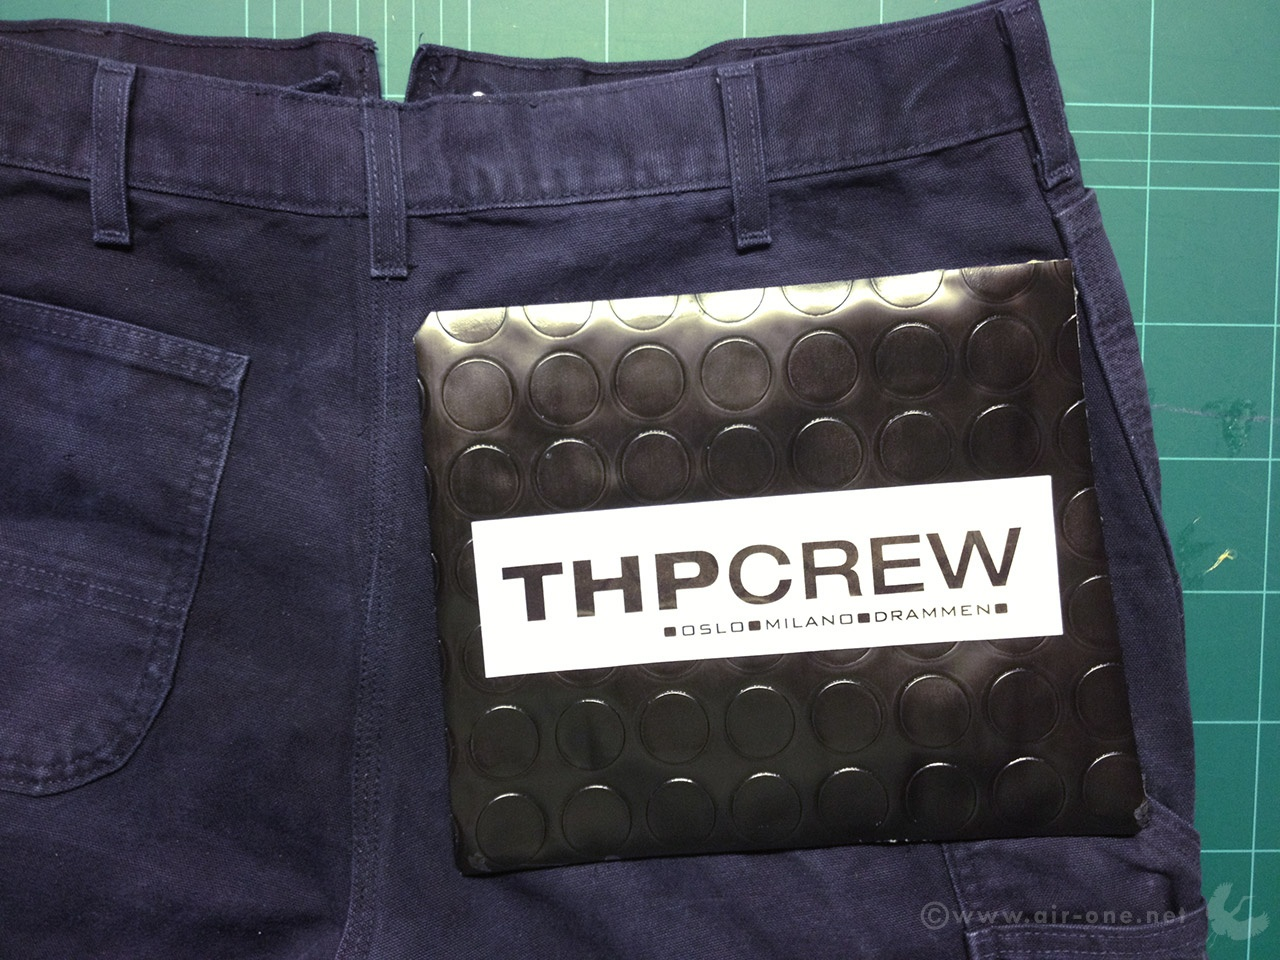 Longboard pants and butt protection for geeks